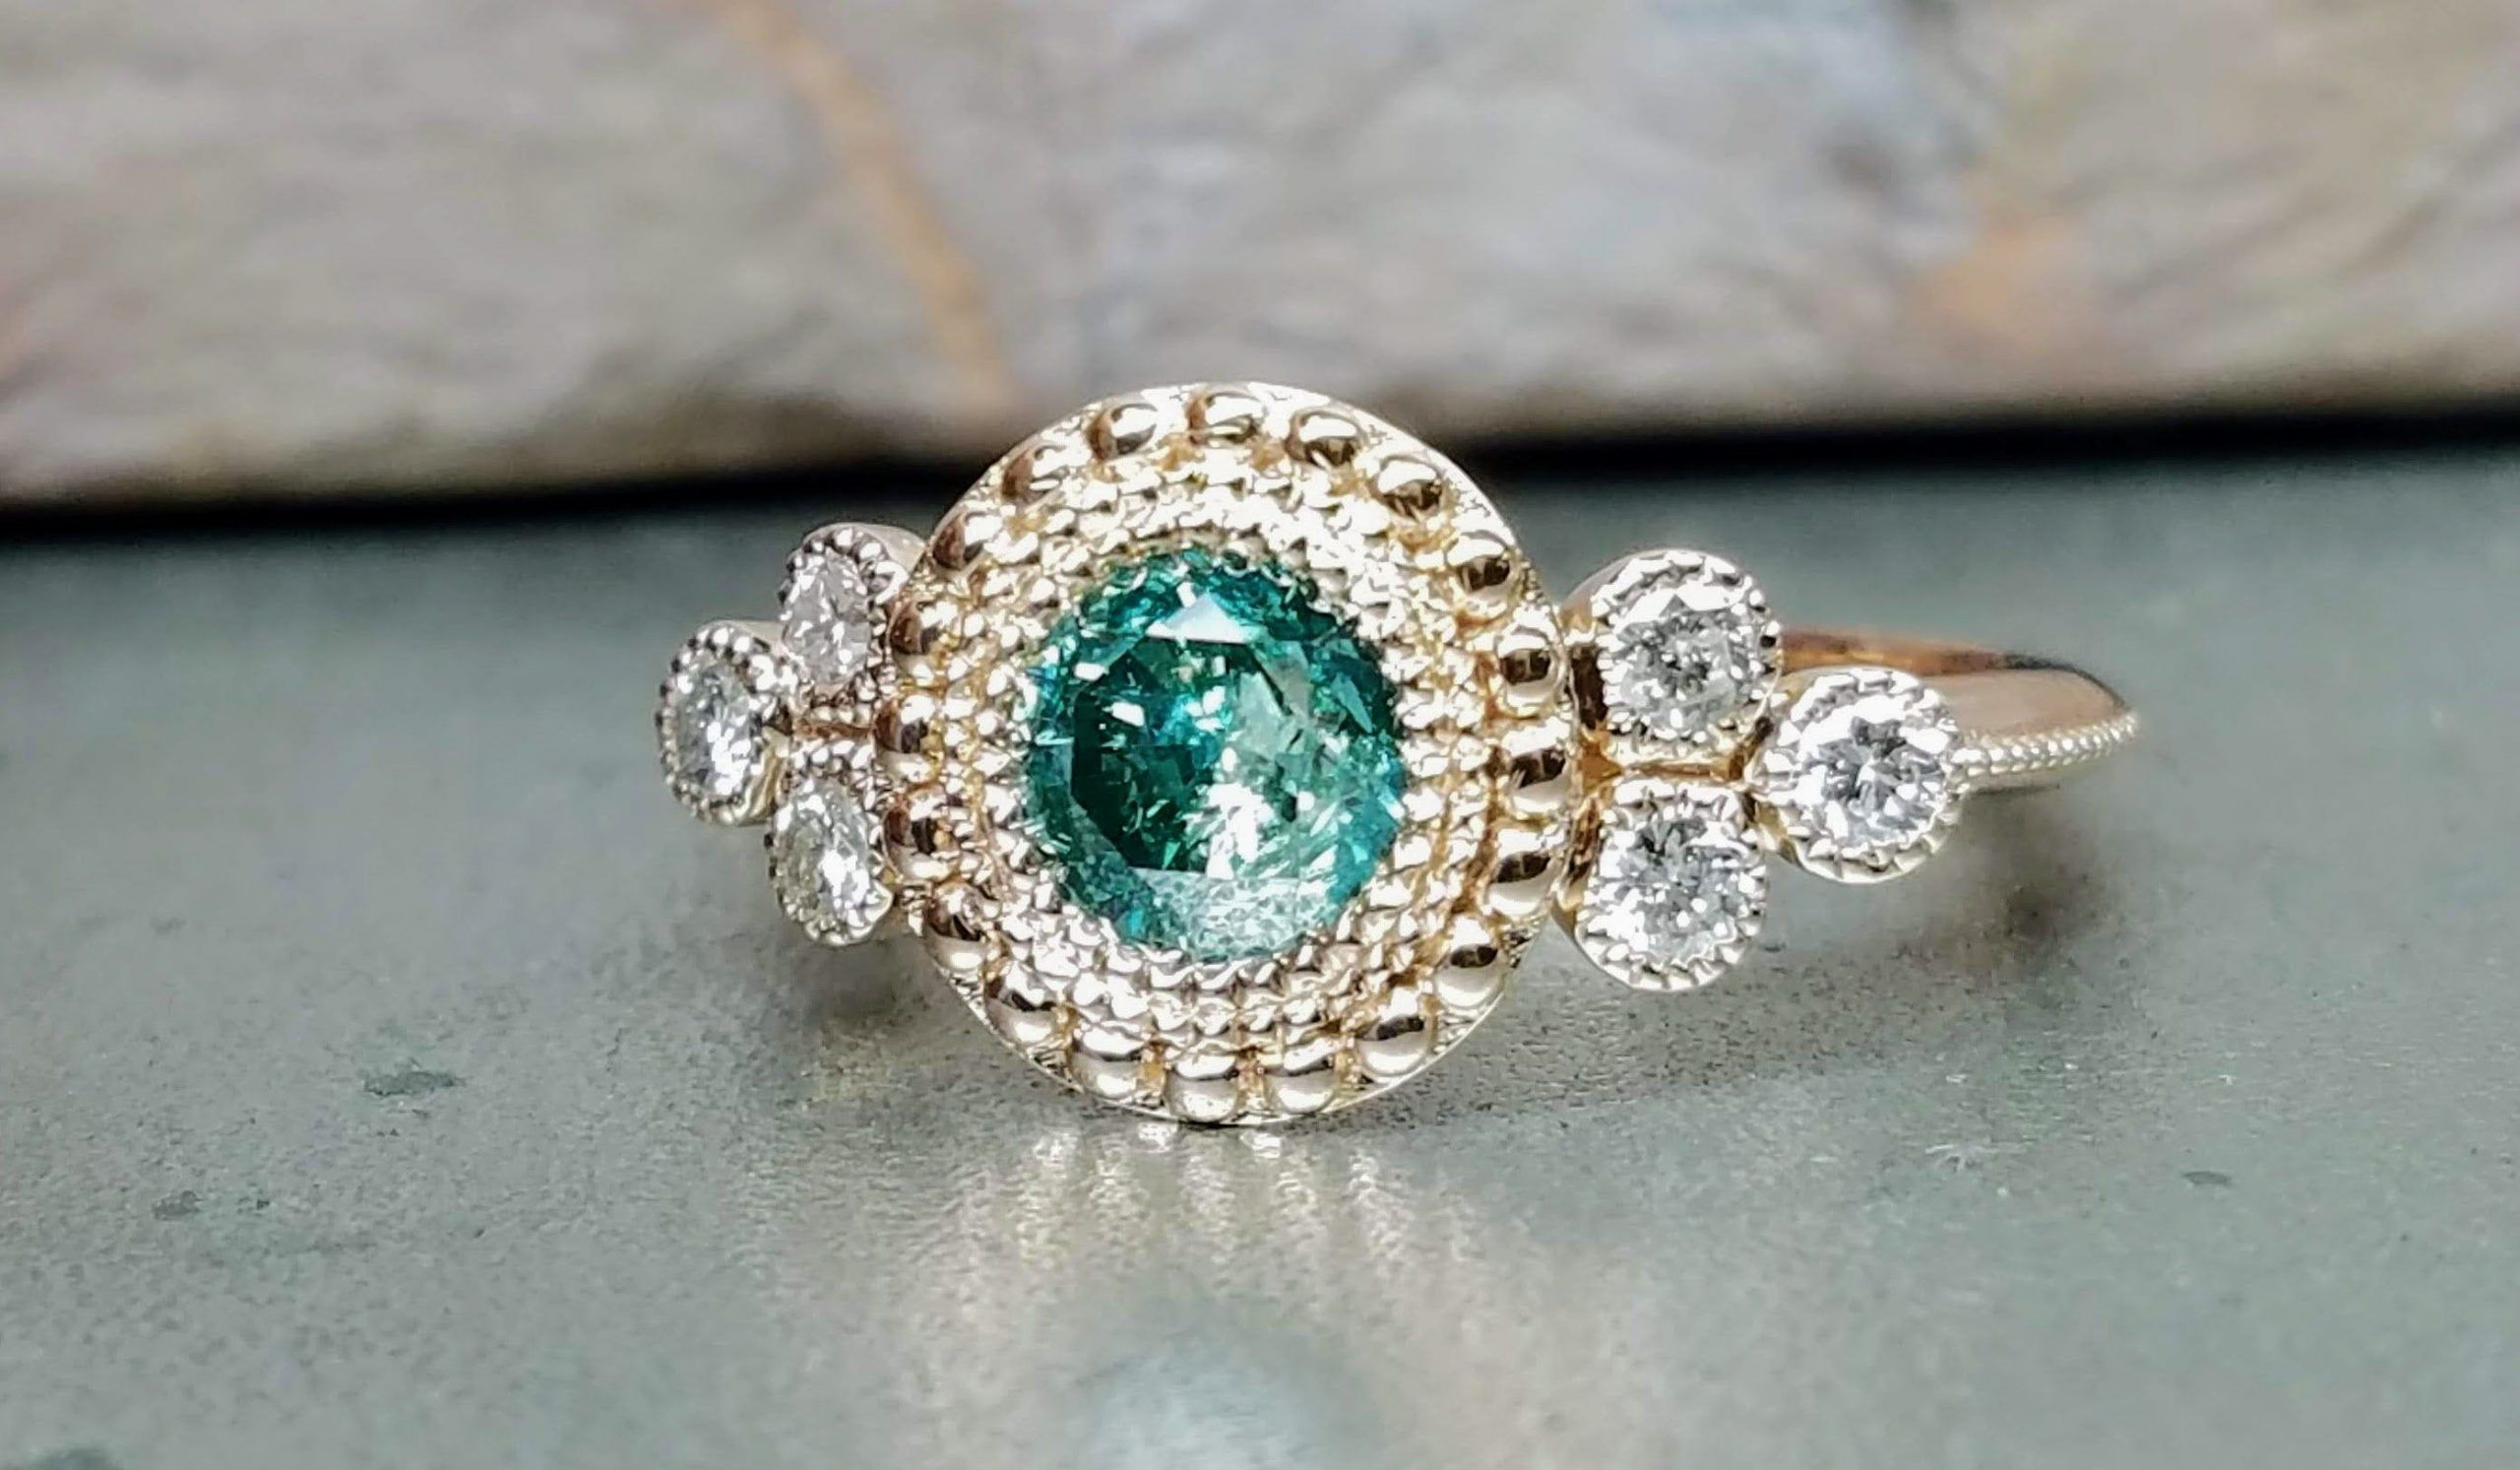 Green diamond engagement ring, Rose gold Victorian style engagement ring, Blue diamond engagement ring.#blue #diamond #engagement #gold #green #ring #rose #style #victorian